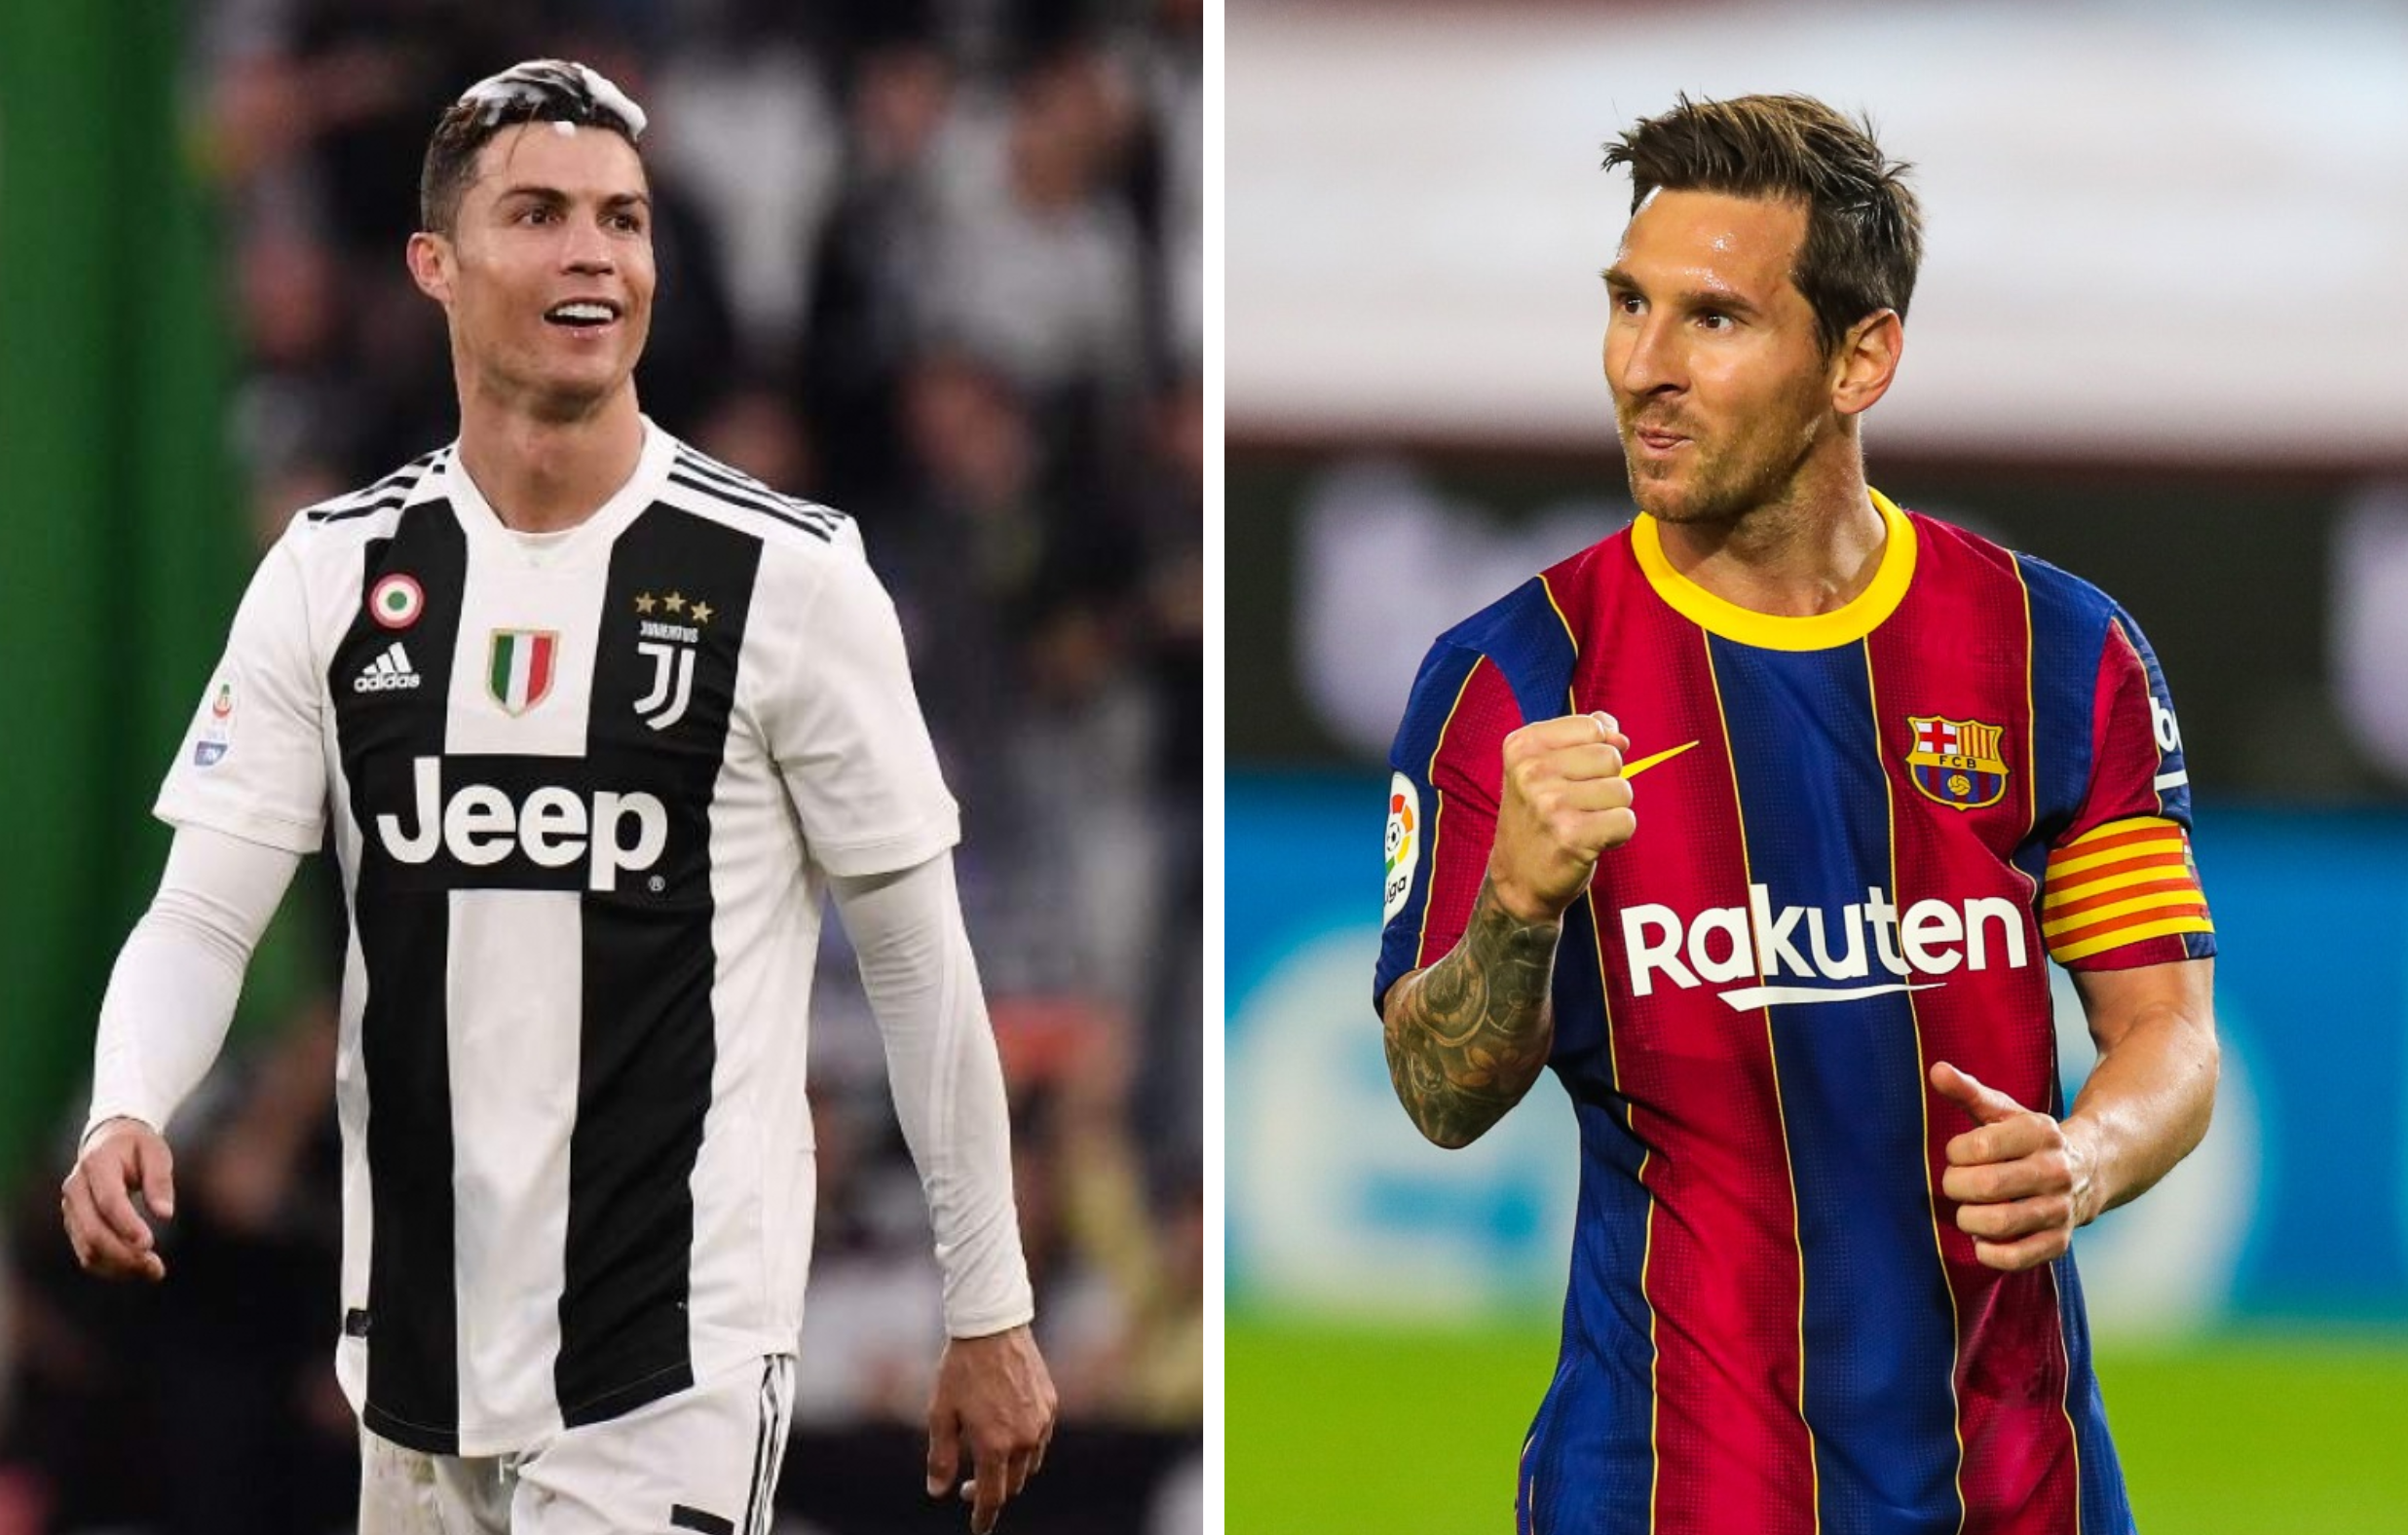 Cristiano Ronaldo And Lionel Messi's Net Worth